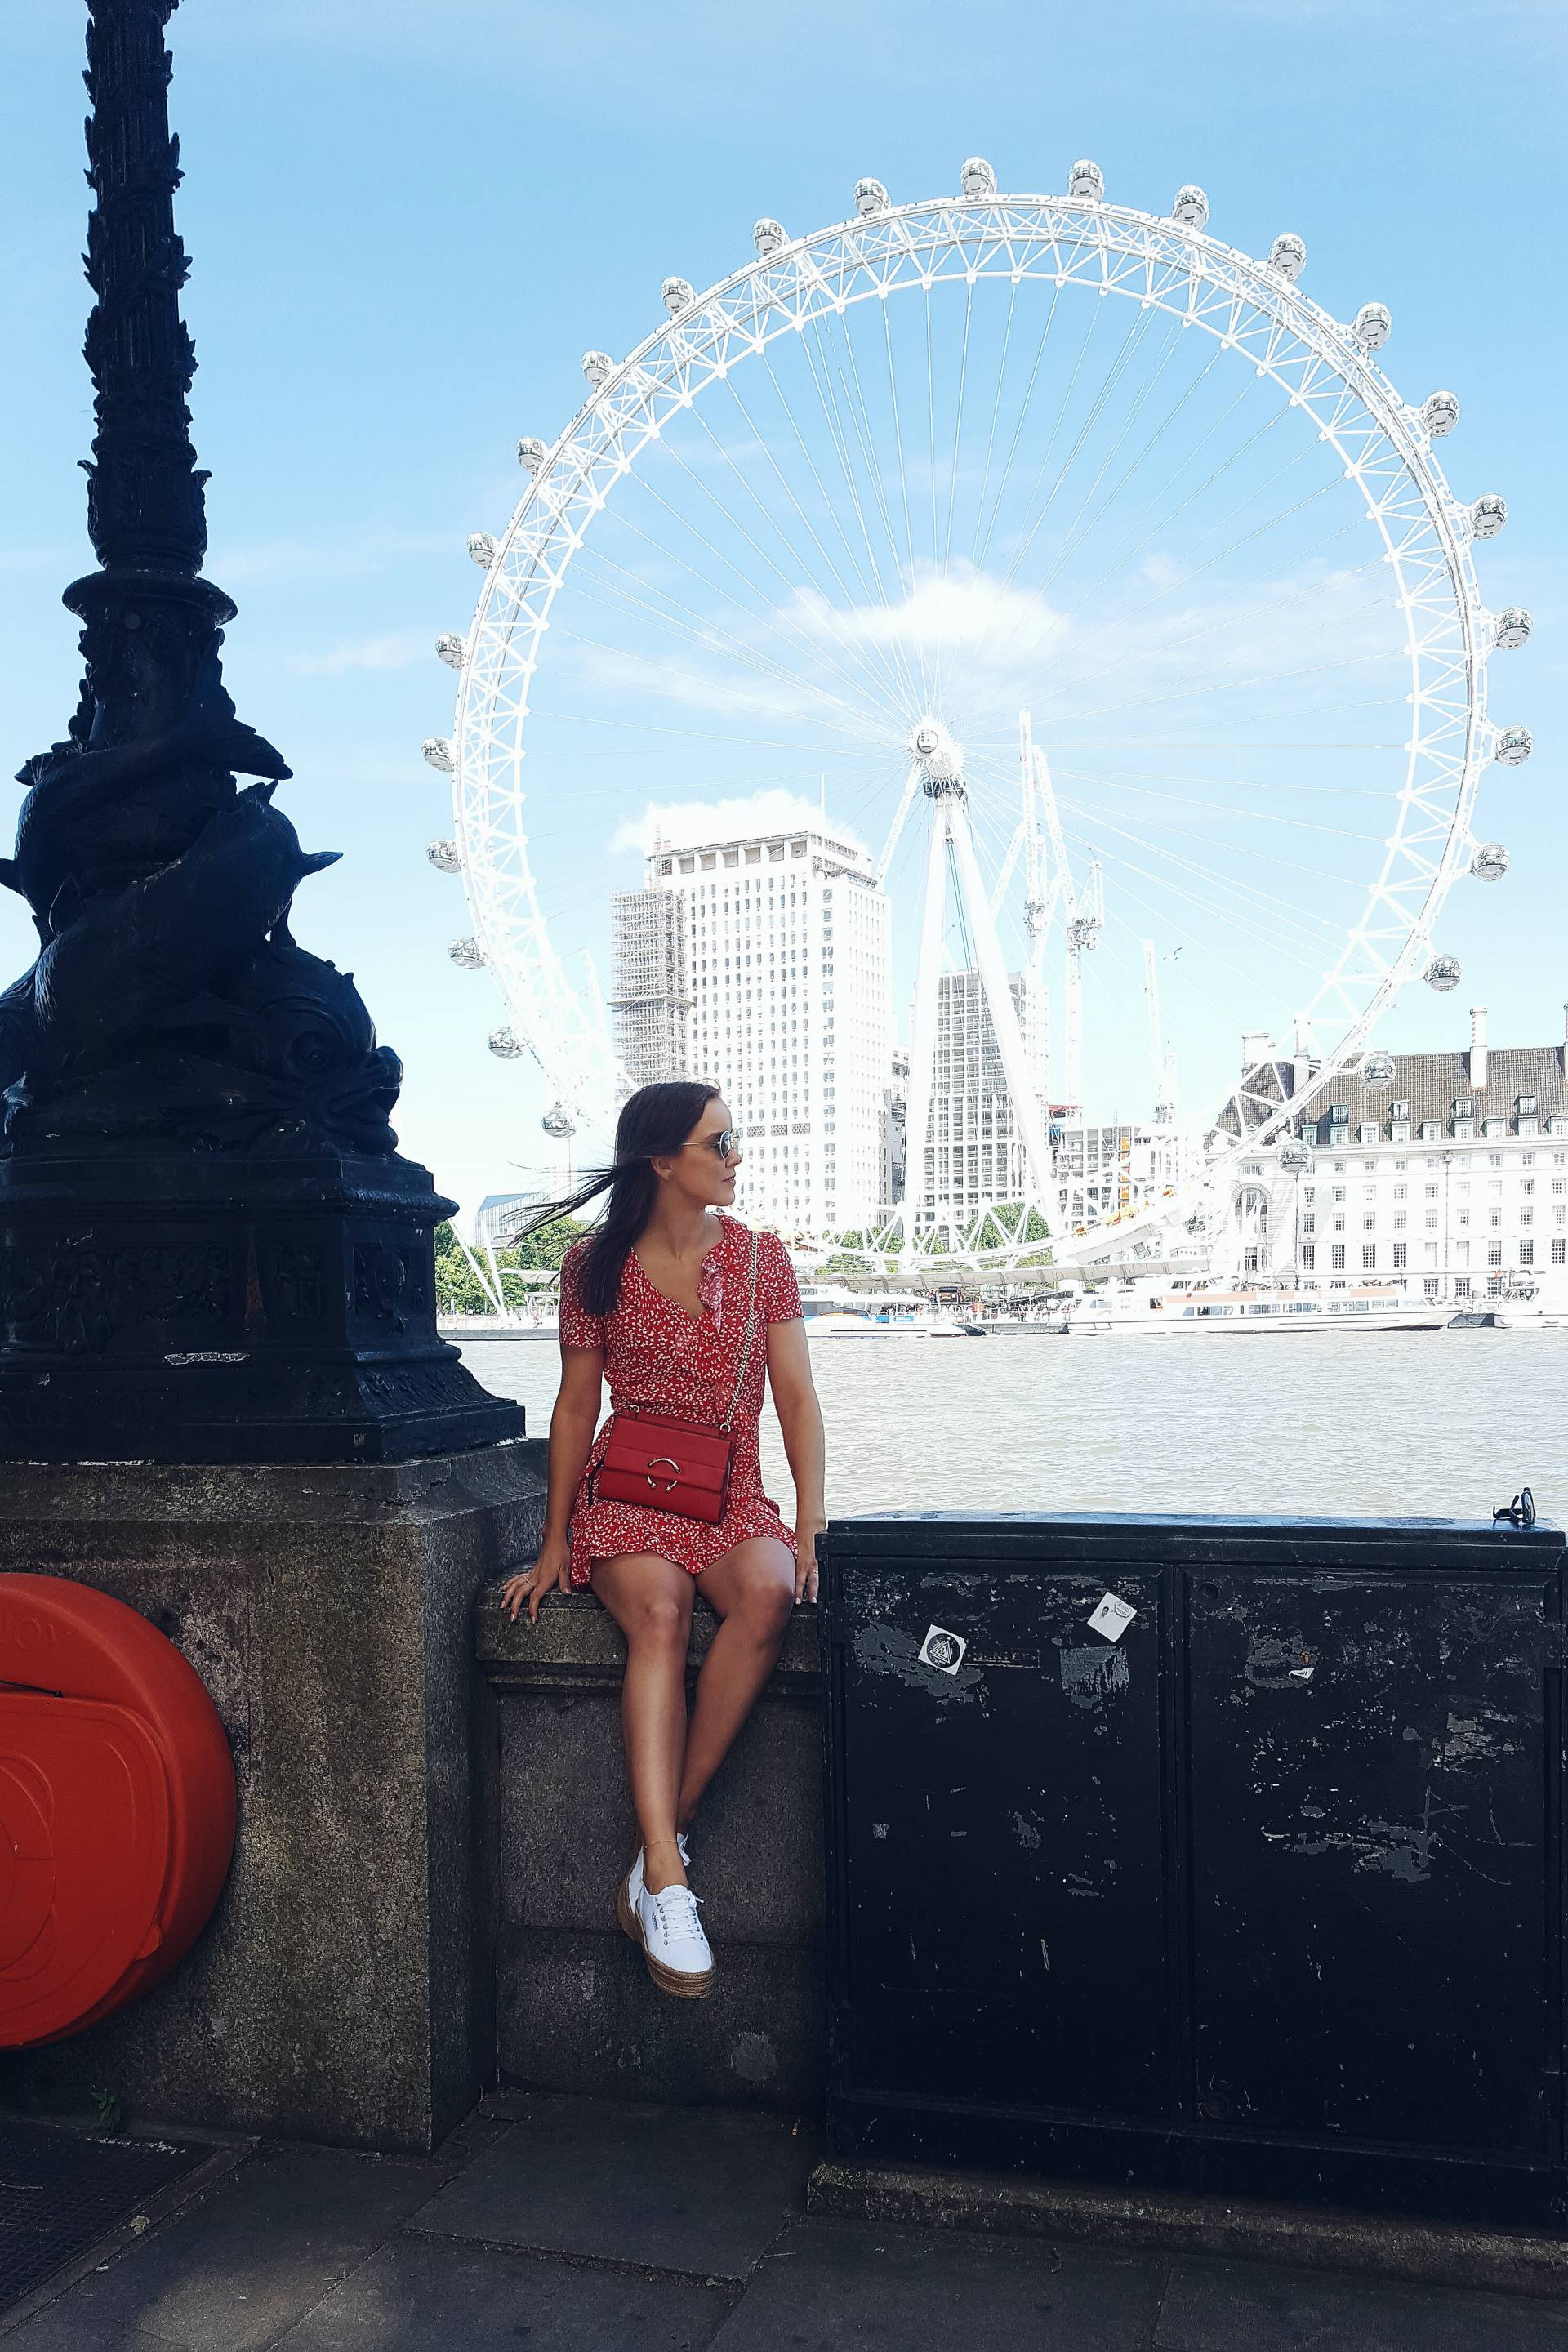 london-travel-guide-food-sightseeing-blogger-instagram-hot-spots